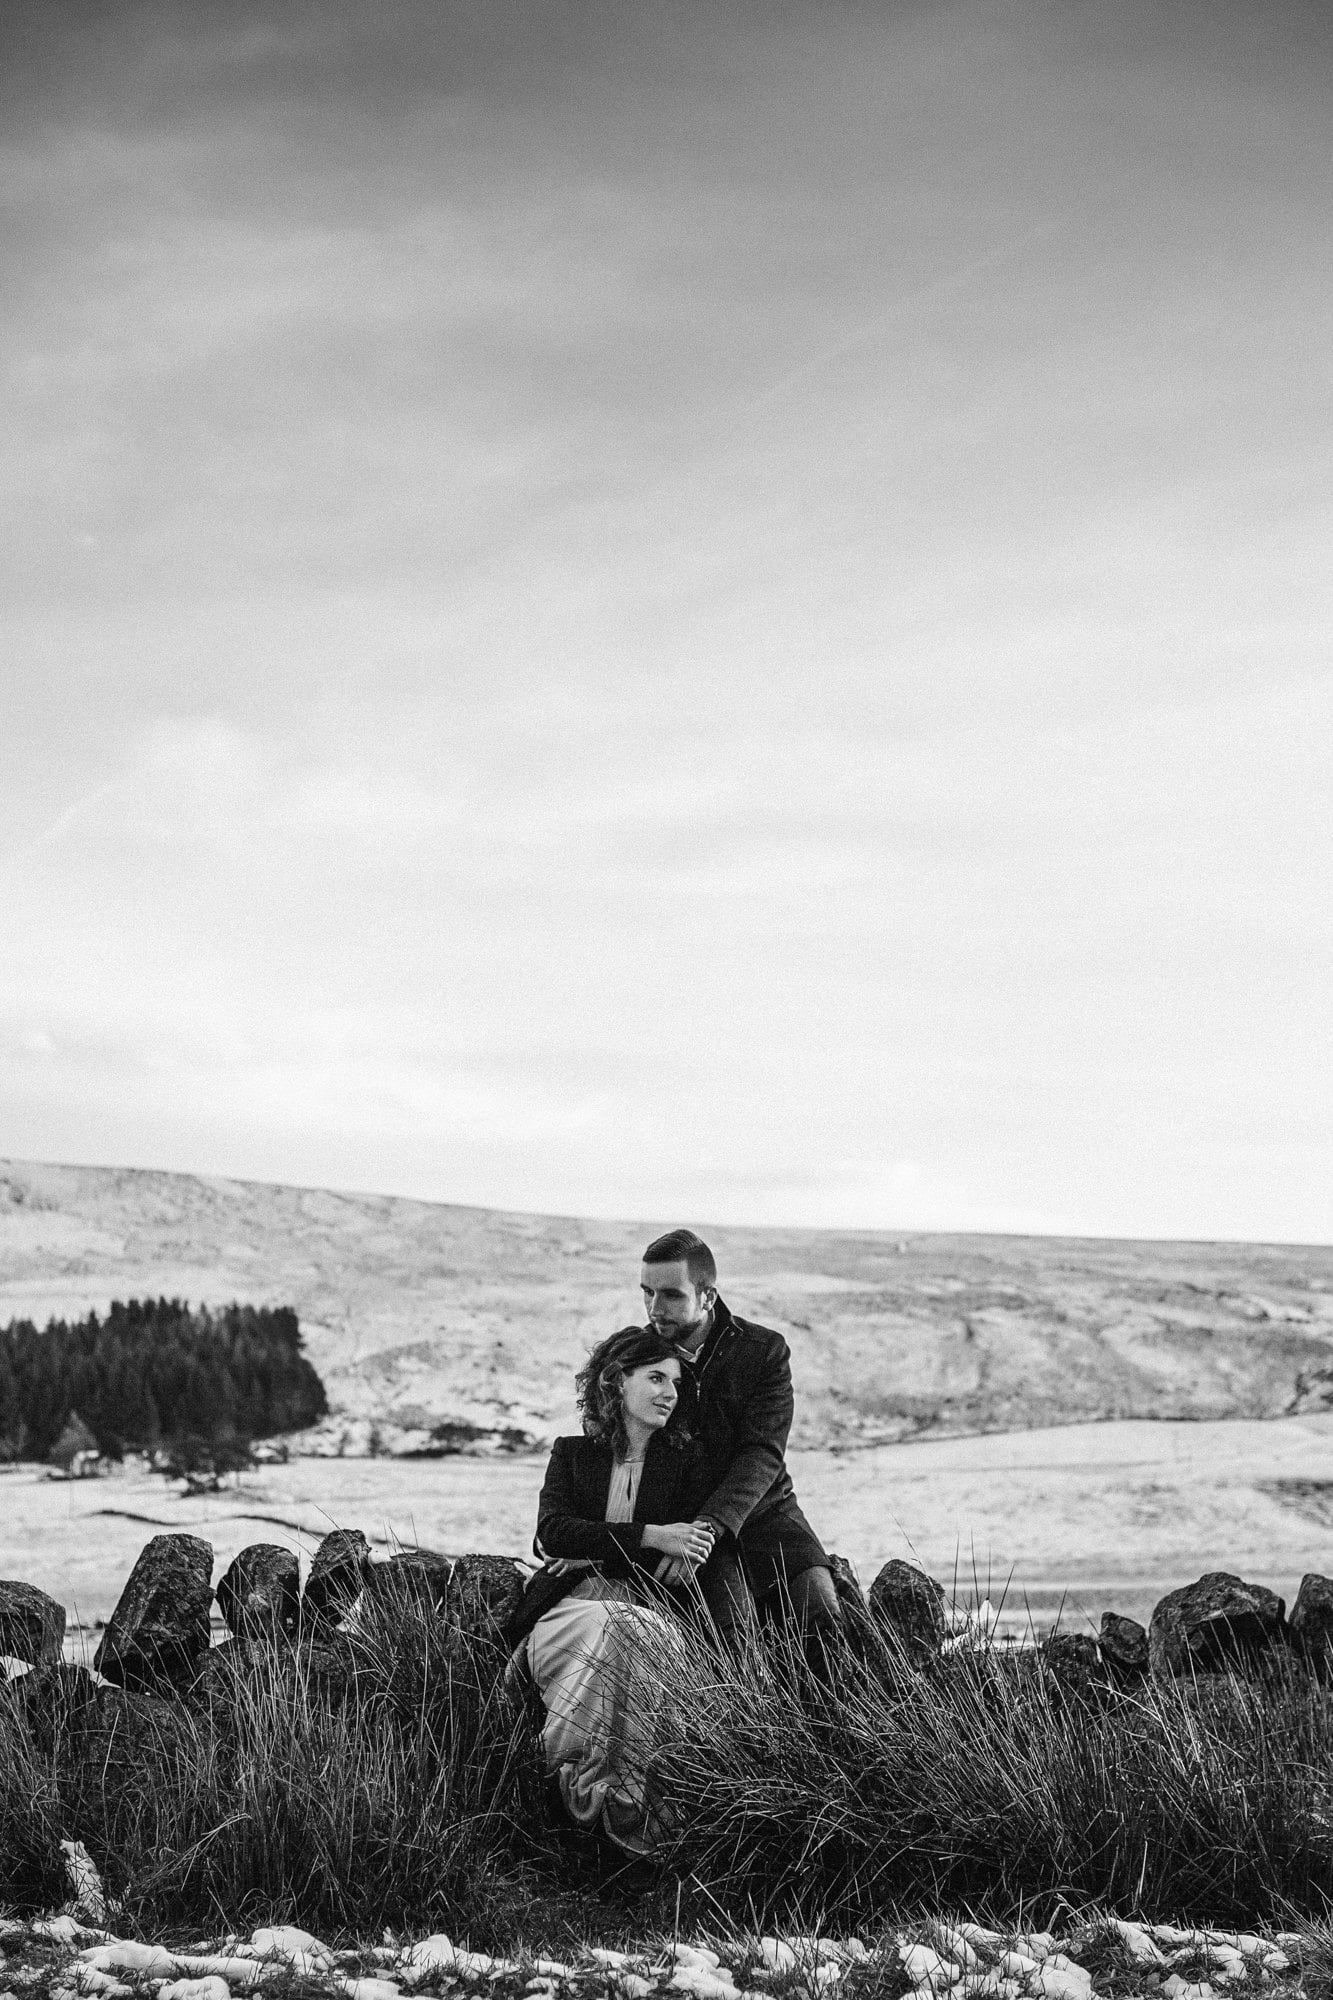 Glen Clova Winter Couples Photoshoot - Kaja & Mateusz